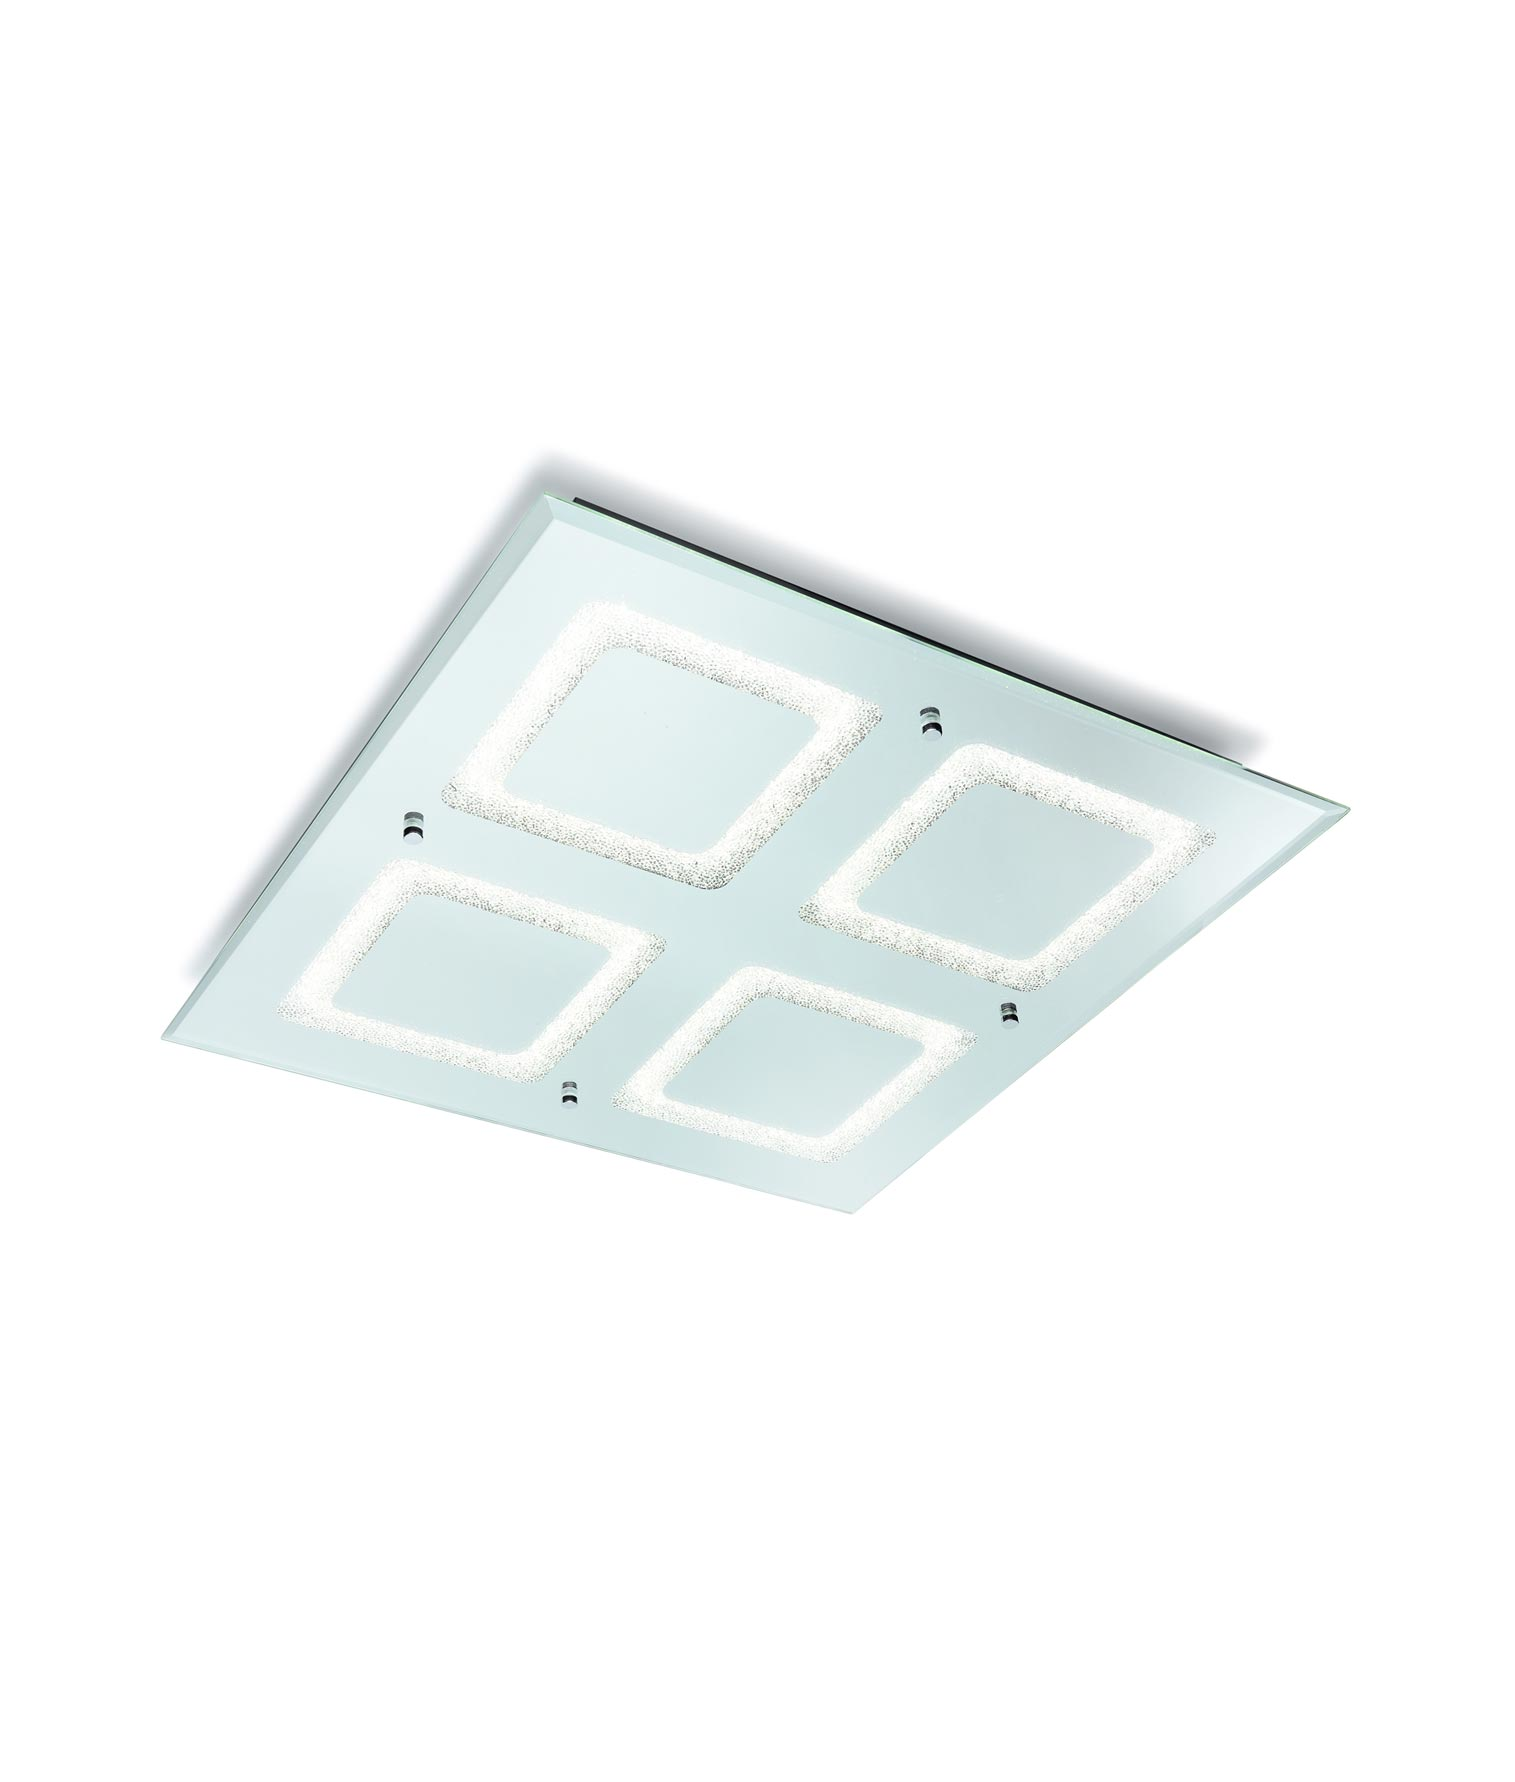 L mpara plaf n luz natural led grande windows la casa de - Lamparas de luz natural ...